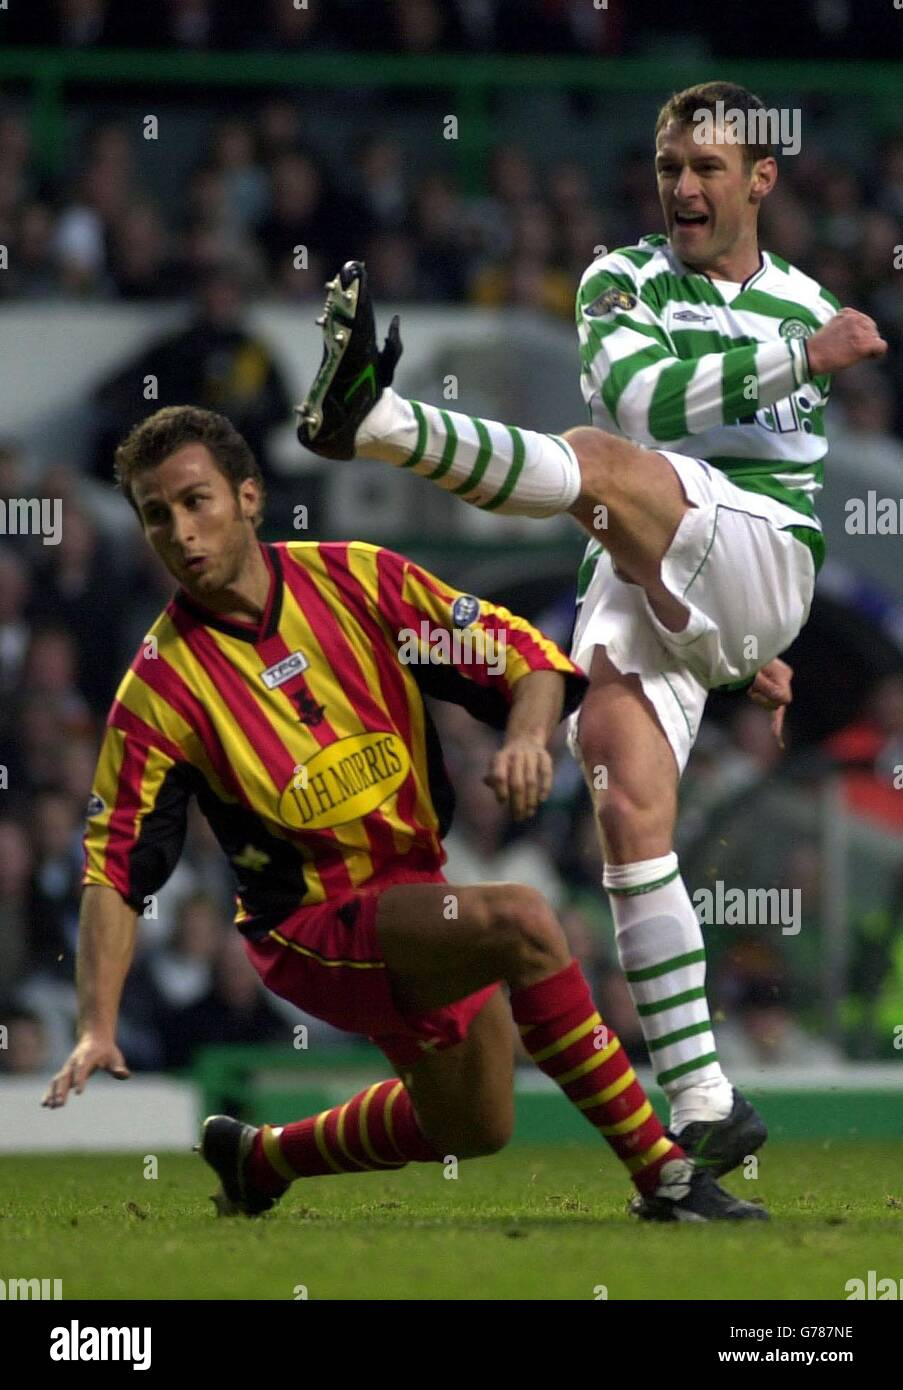 Celtic v Partick - Stock Image